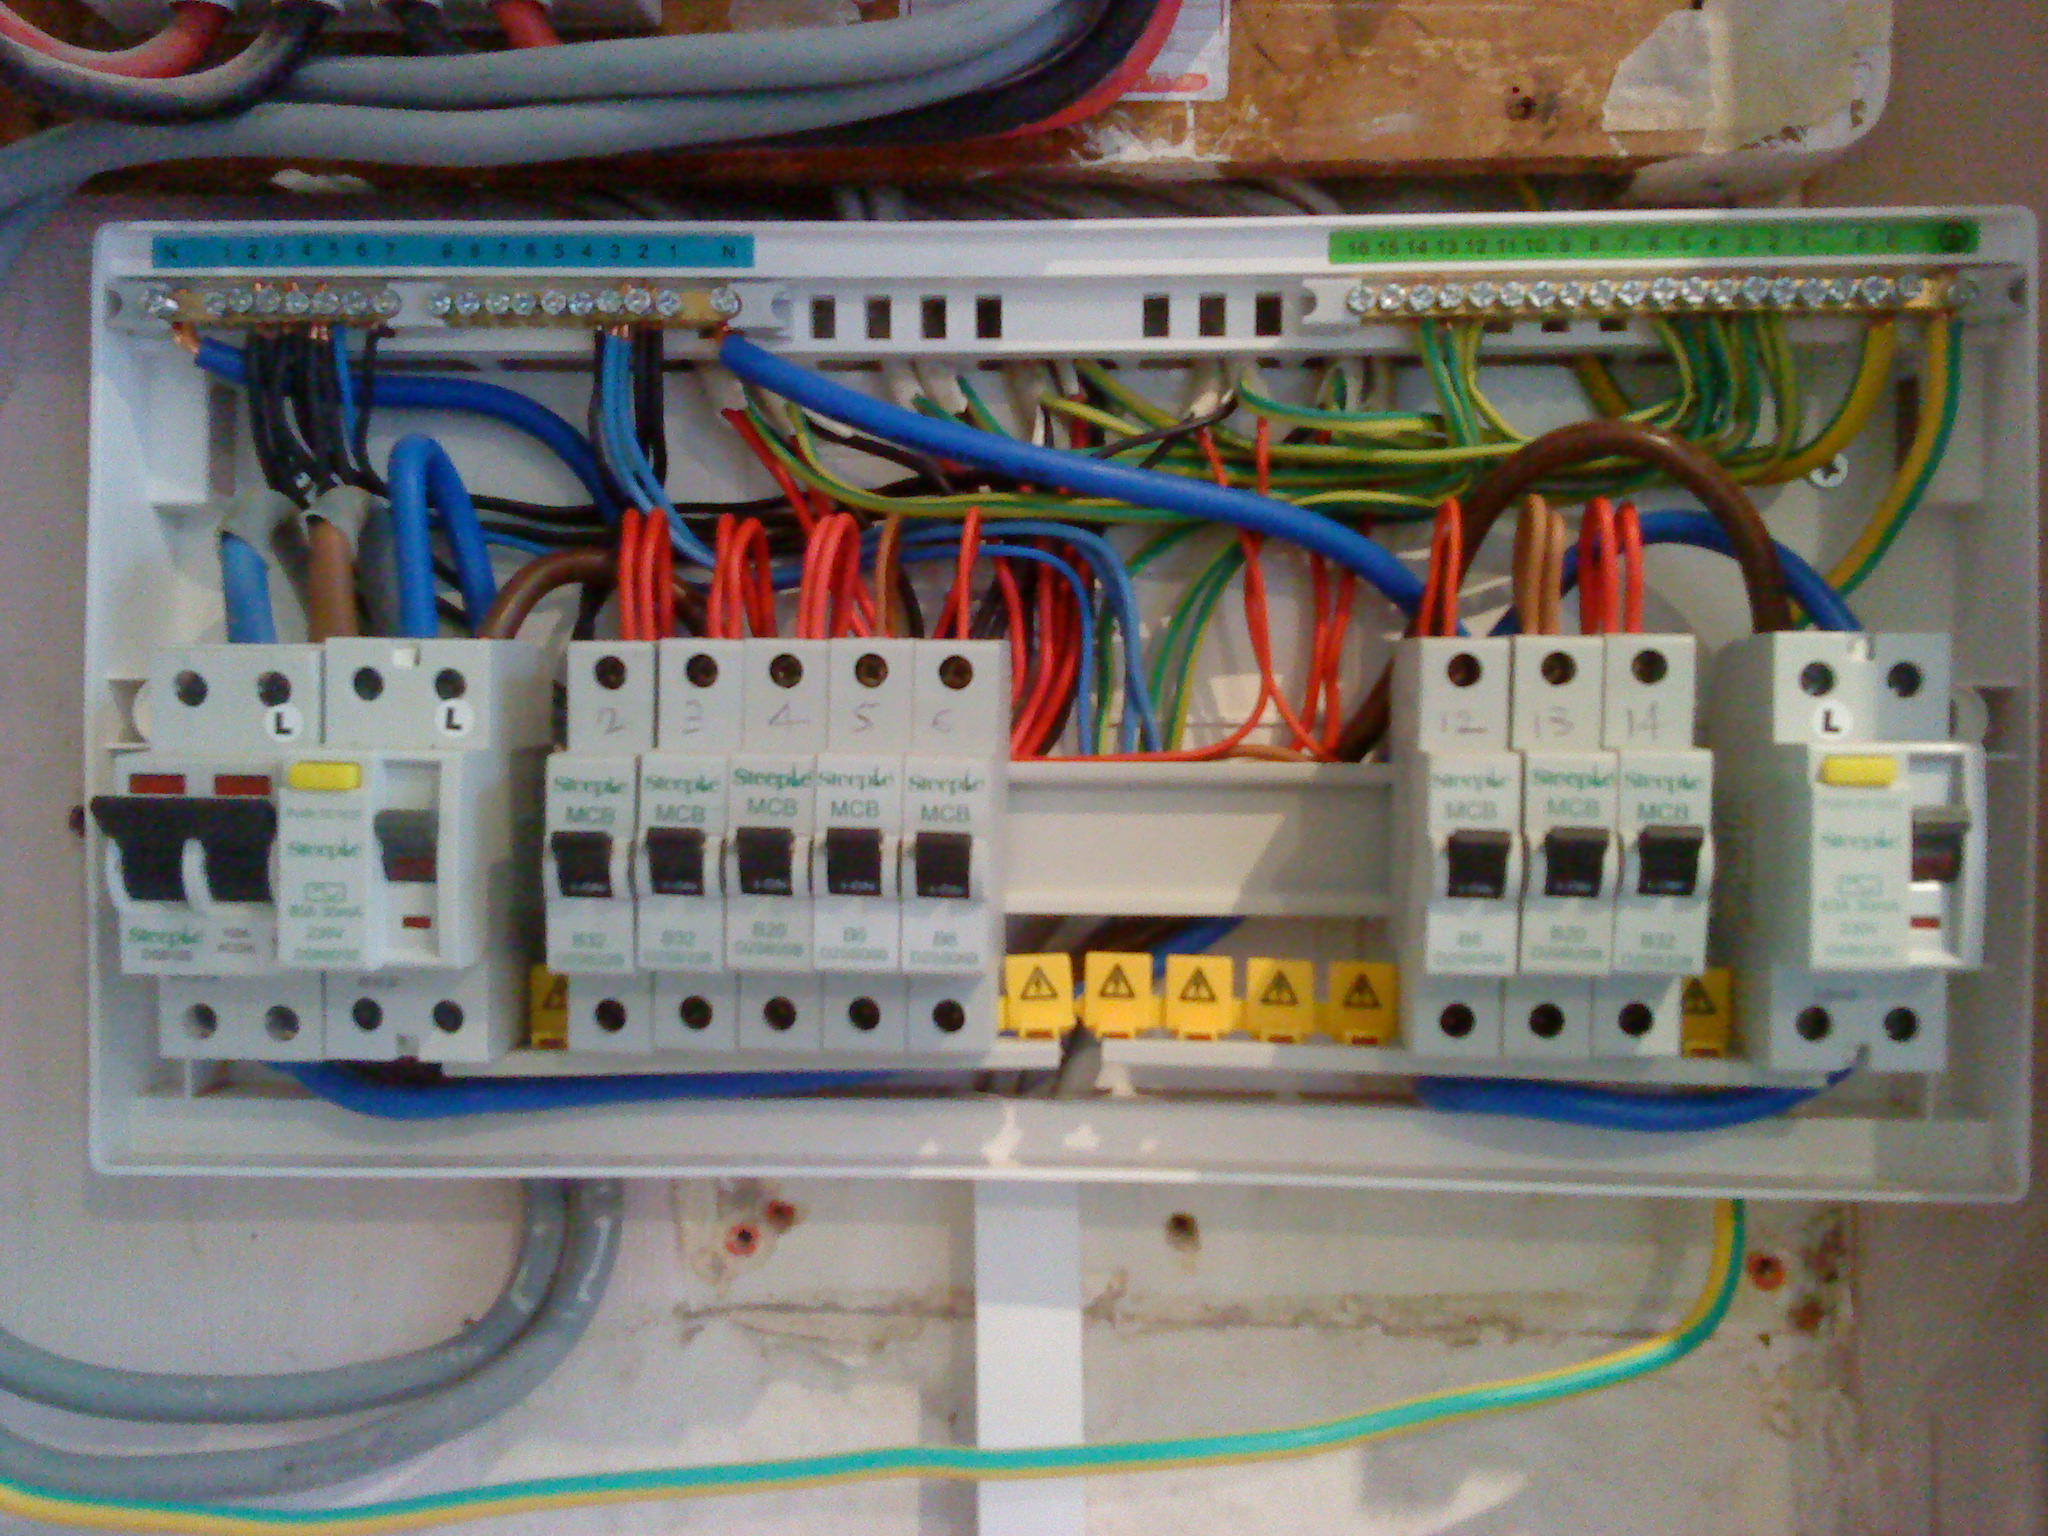 mt_6377] residential electrical installation distribution boards components  schematic wiring  bdel norab numap mohammedshrine librar wiring 101